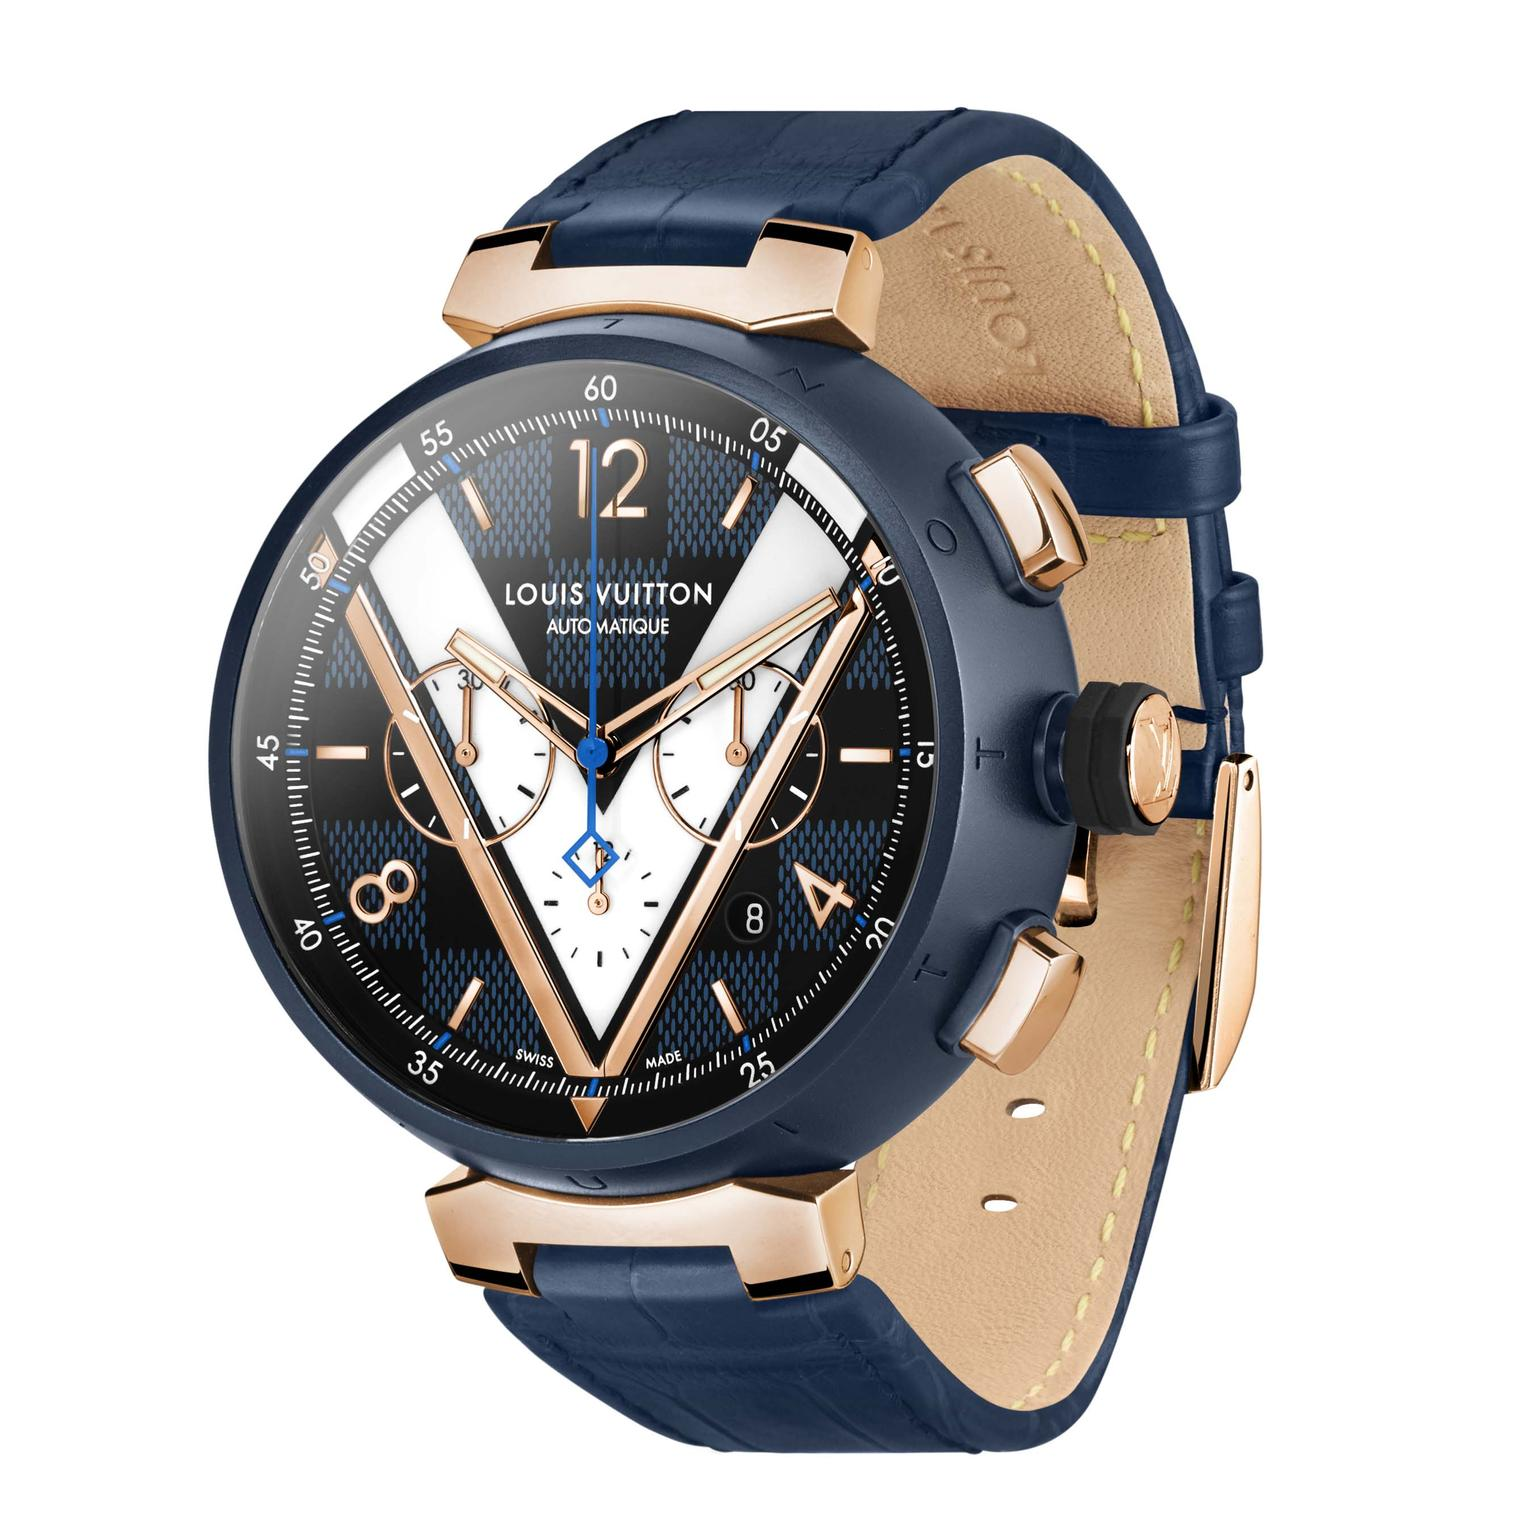 Louis Vuitton Tambour Damier Cobalt Chronograph pvd and gold